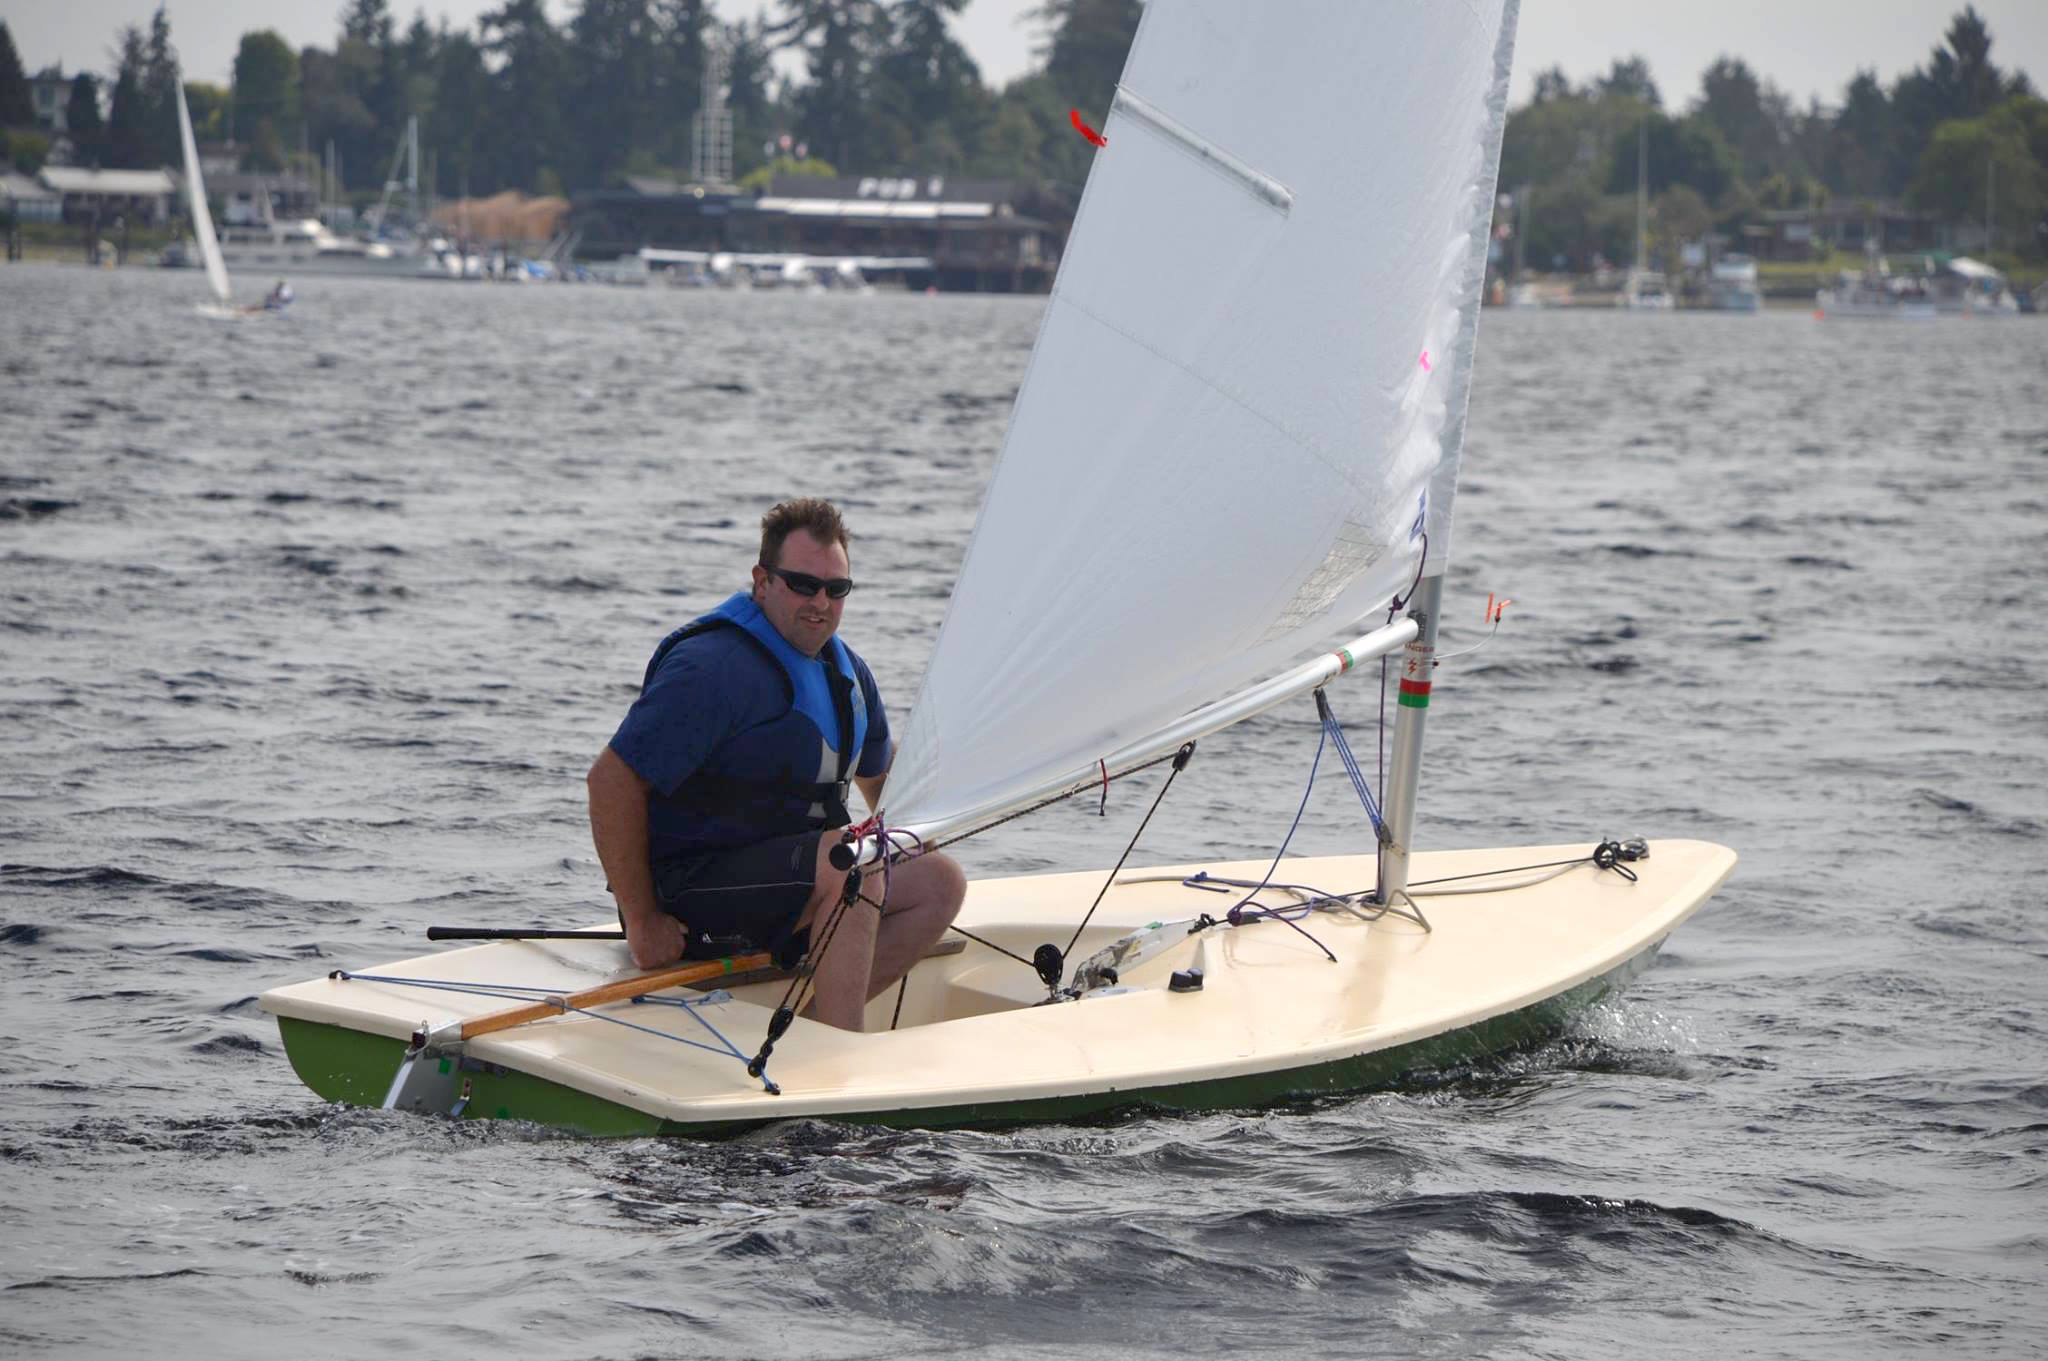 First year Rookie Ken Olson sailing up to the mark